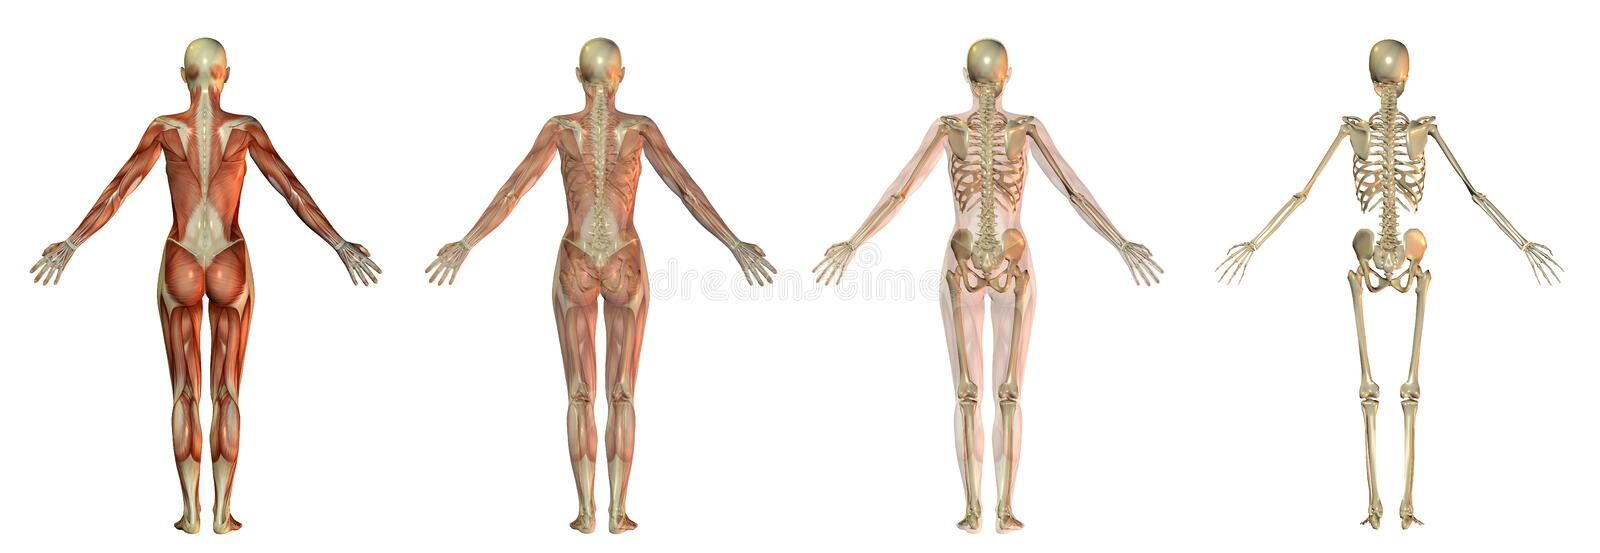 Download Human body illustrations stock illustration. Image of medical - 13446175